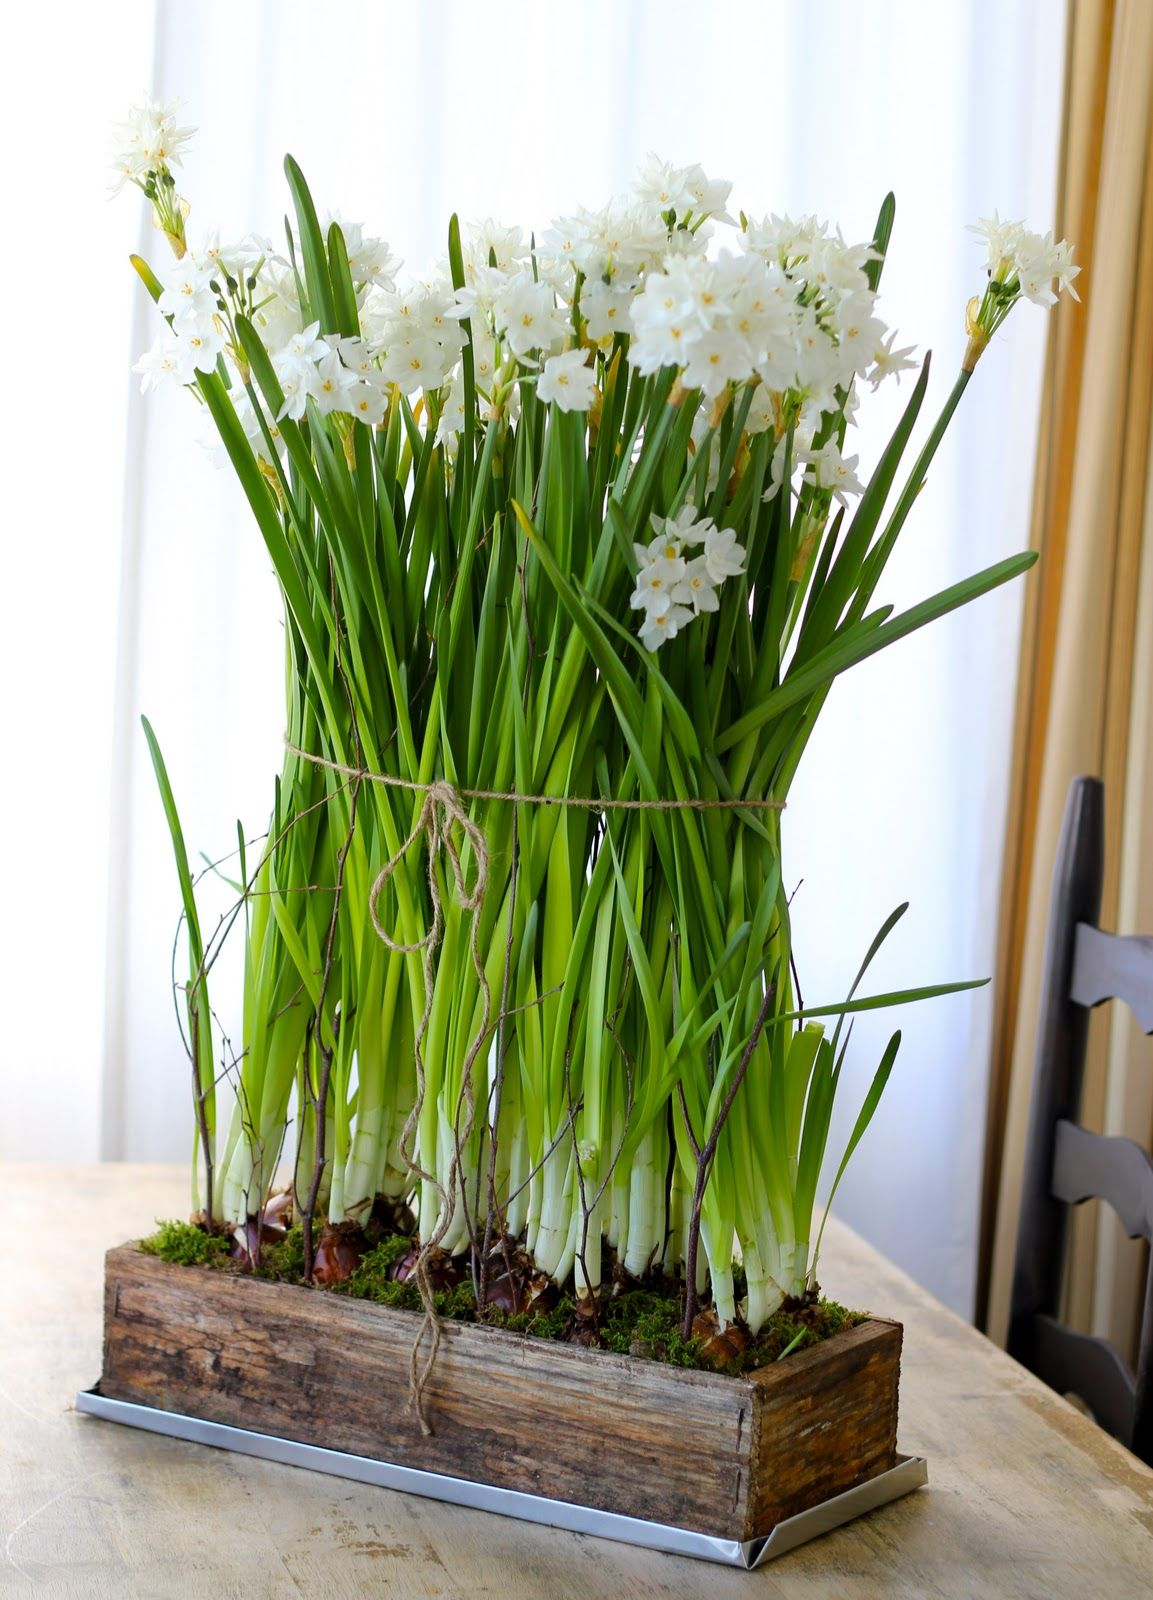 plant paperwhite bulbs in fall, they bloom right near the holidays